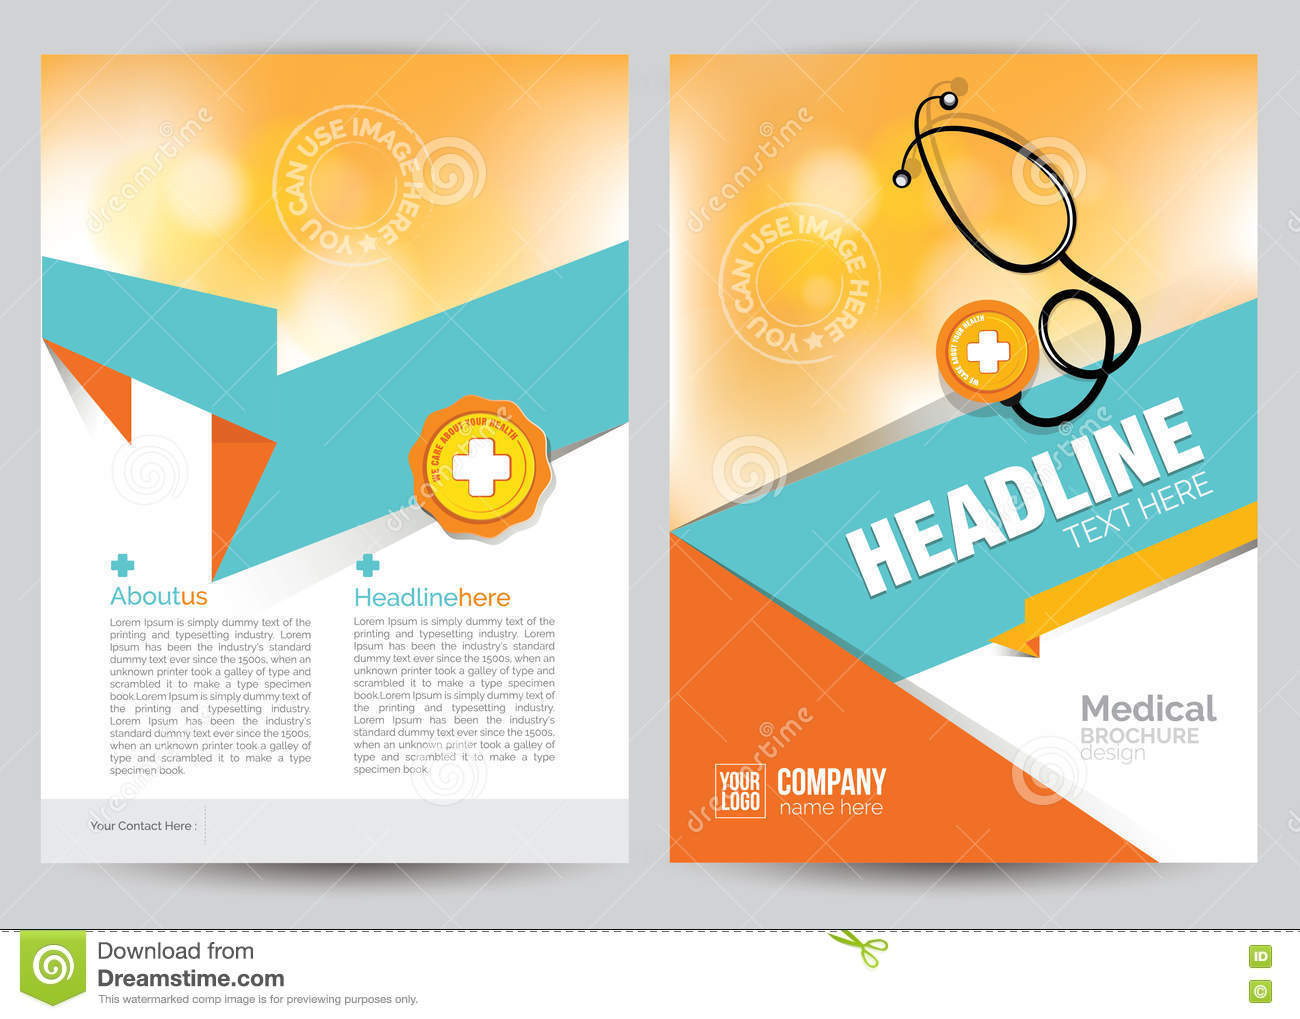 healthcare brochure templates - medical brochure flyer layout template a4 size stock